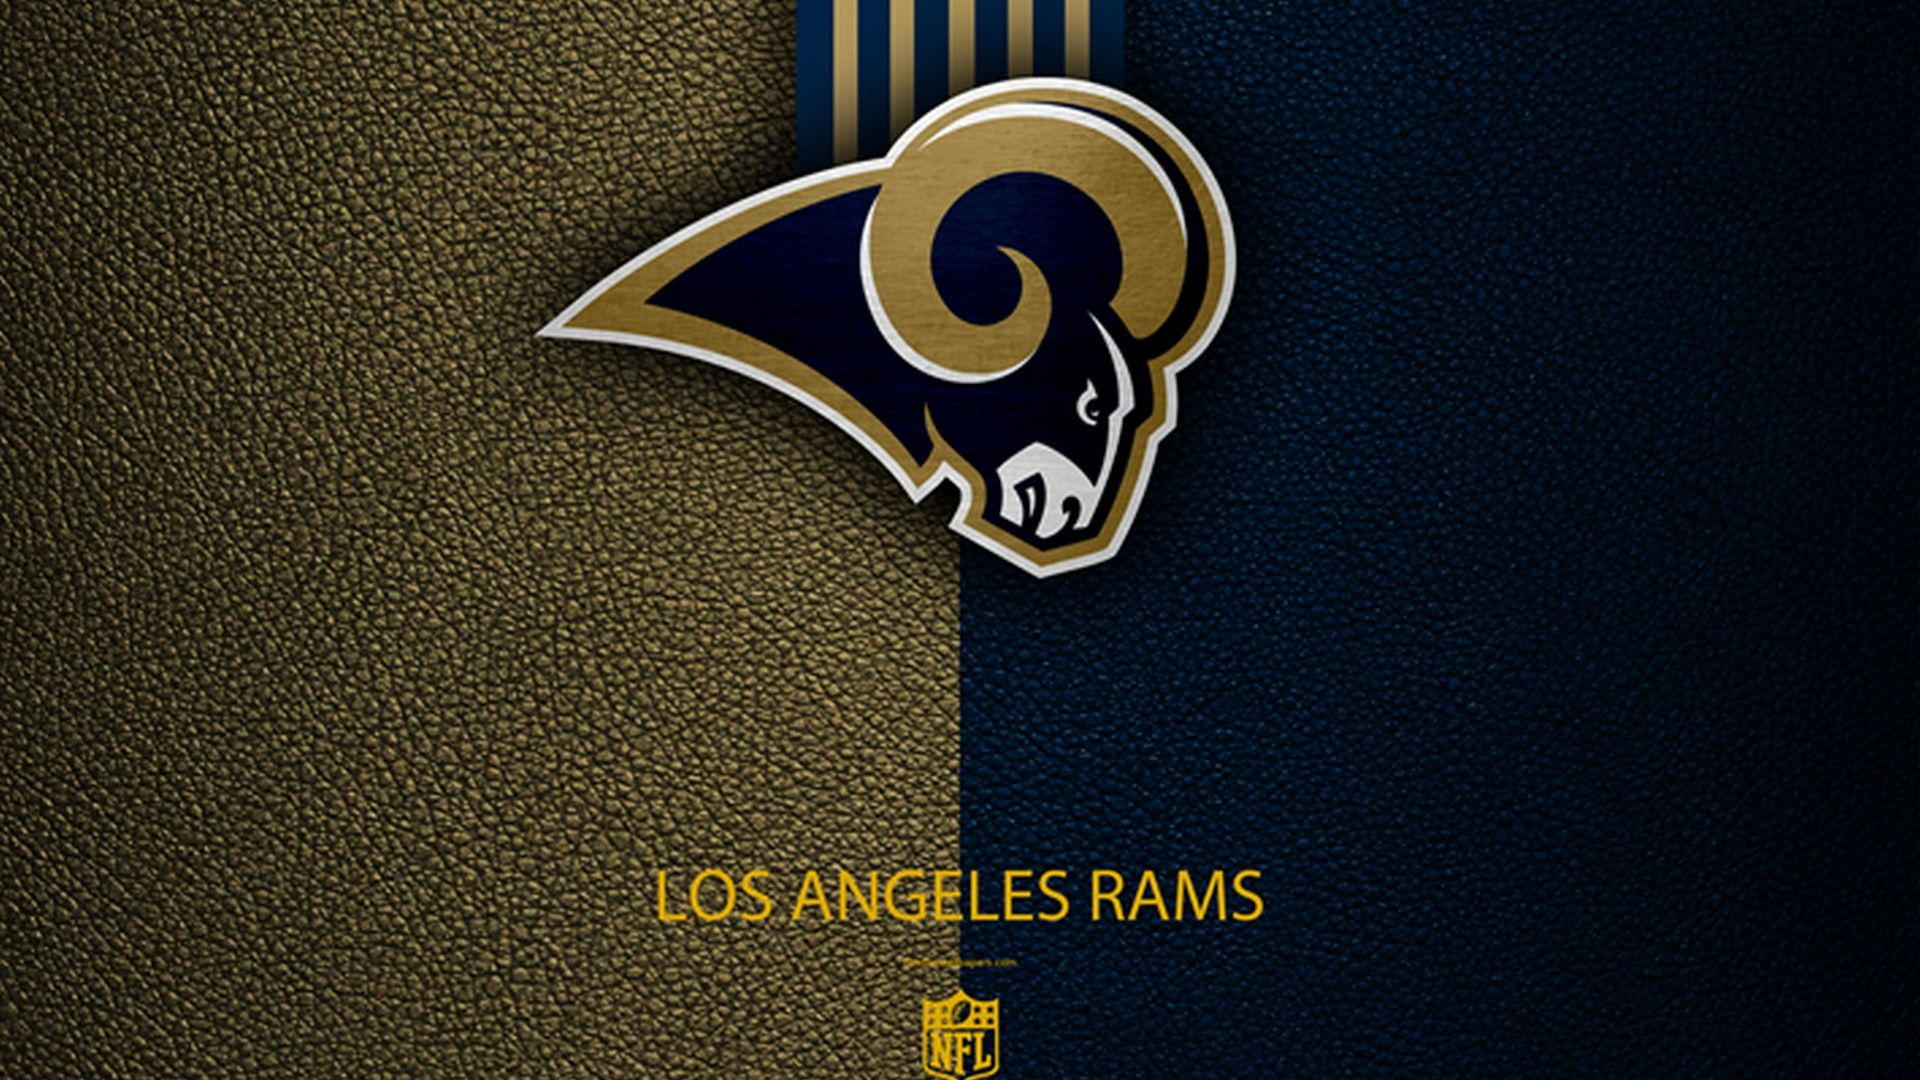 Wallpapers Los Angeles Rams 2021 Nfl Football Wallpapers Nfl Football Wallpaper Los Angeles Rams Football Wallpaper